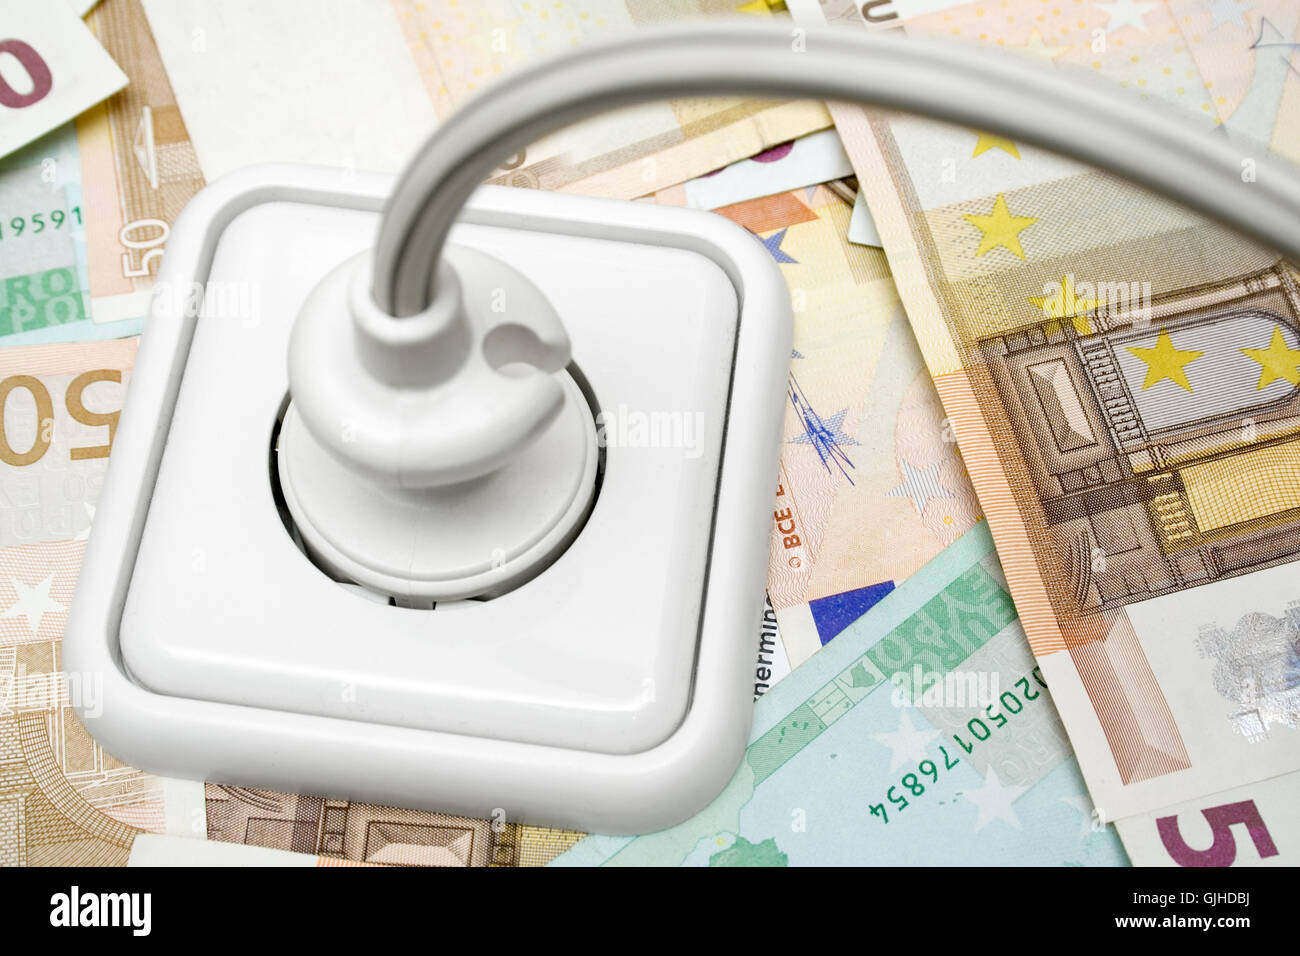 electricity costs - Stock Image